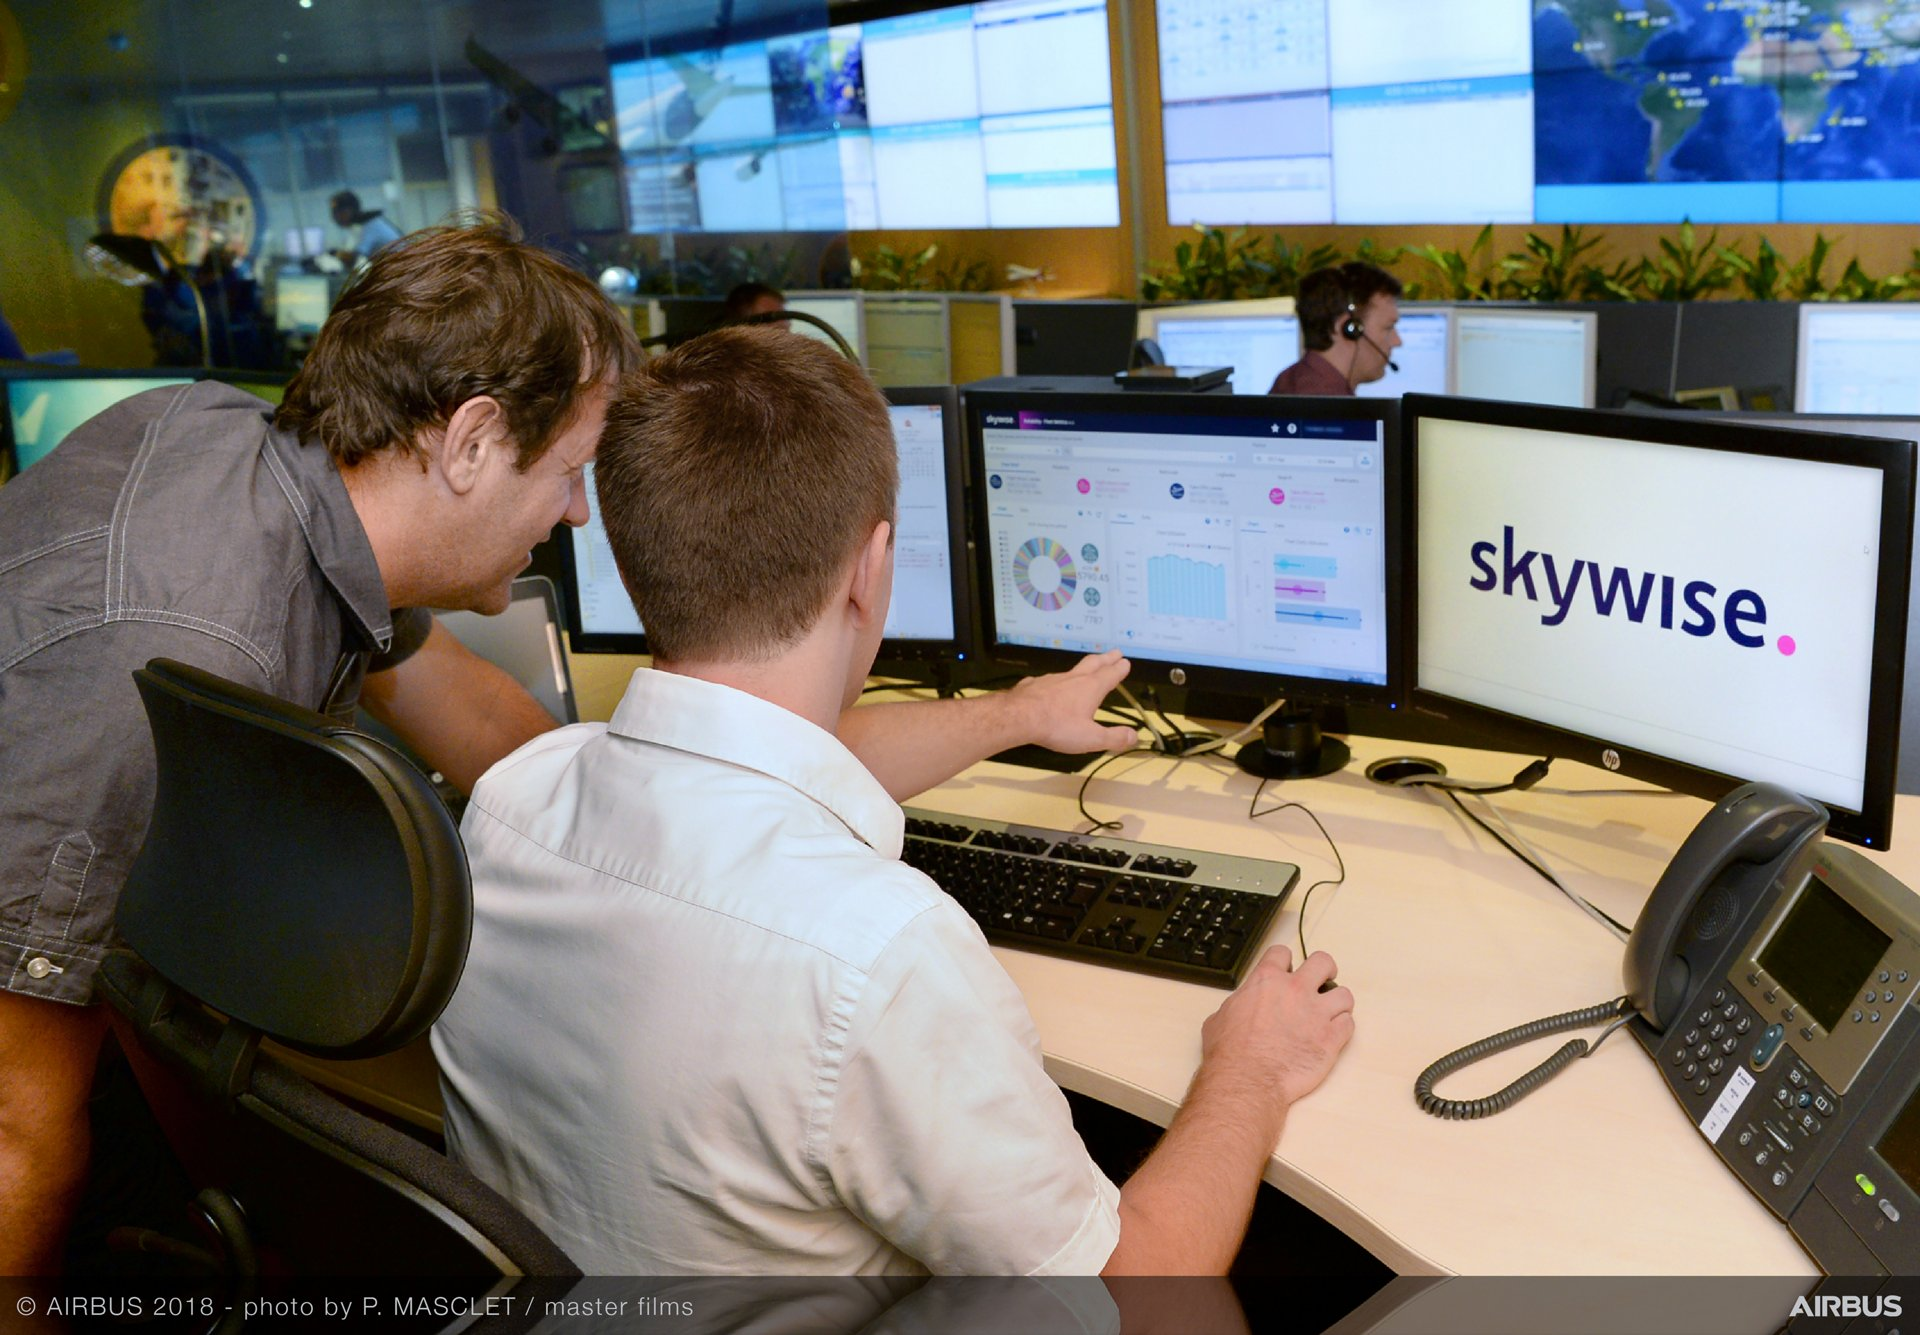 As aviation鈥檚 open data platform, Skywise provides all users with one single access point to their enriched data by bringing aviation data from multiple sources across the industry into one secure cloud-based platform